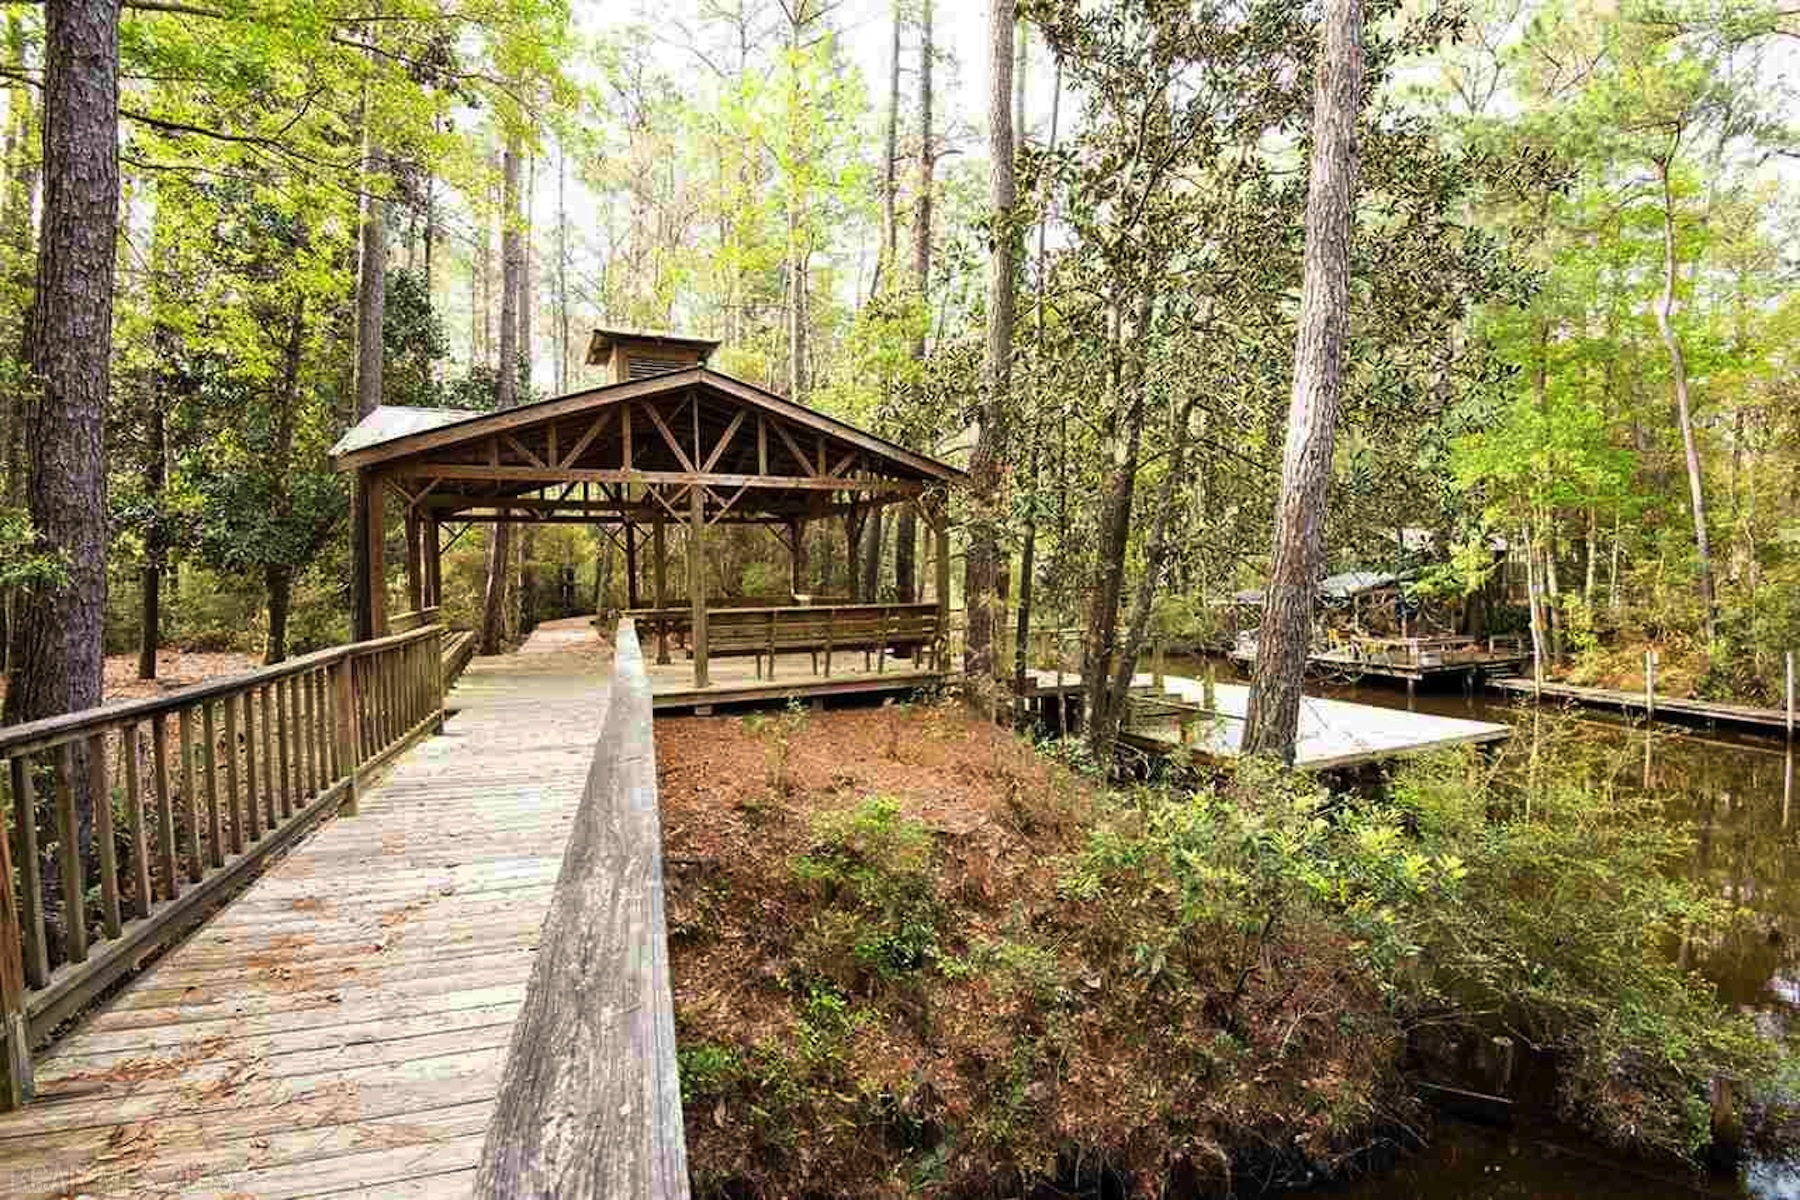 Terreno por un Venta en Boardwalk @ Baileys Creek 17 Bird Watch Lane Fairhope, Alabama 36532 Estados Unidos